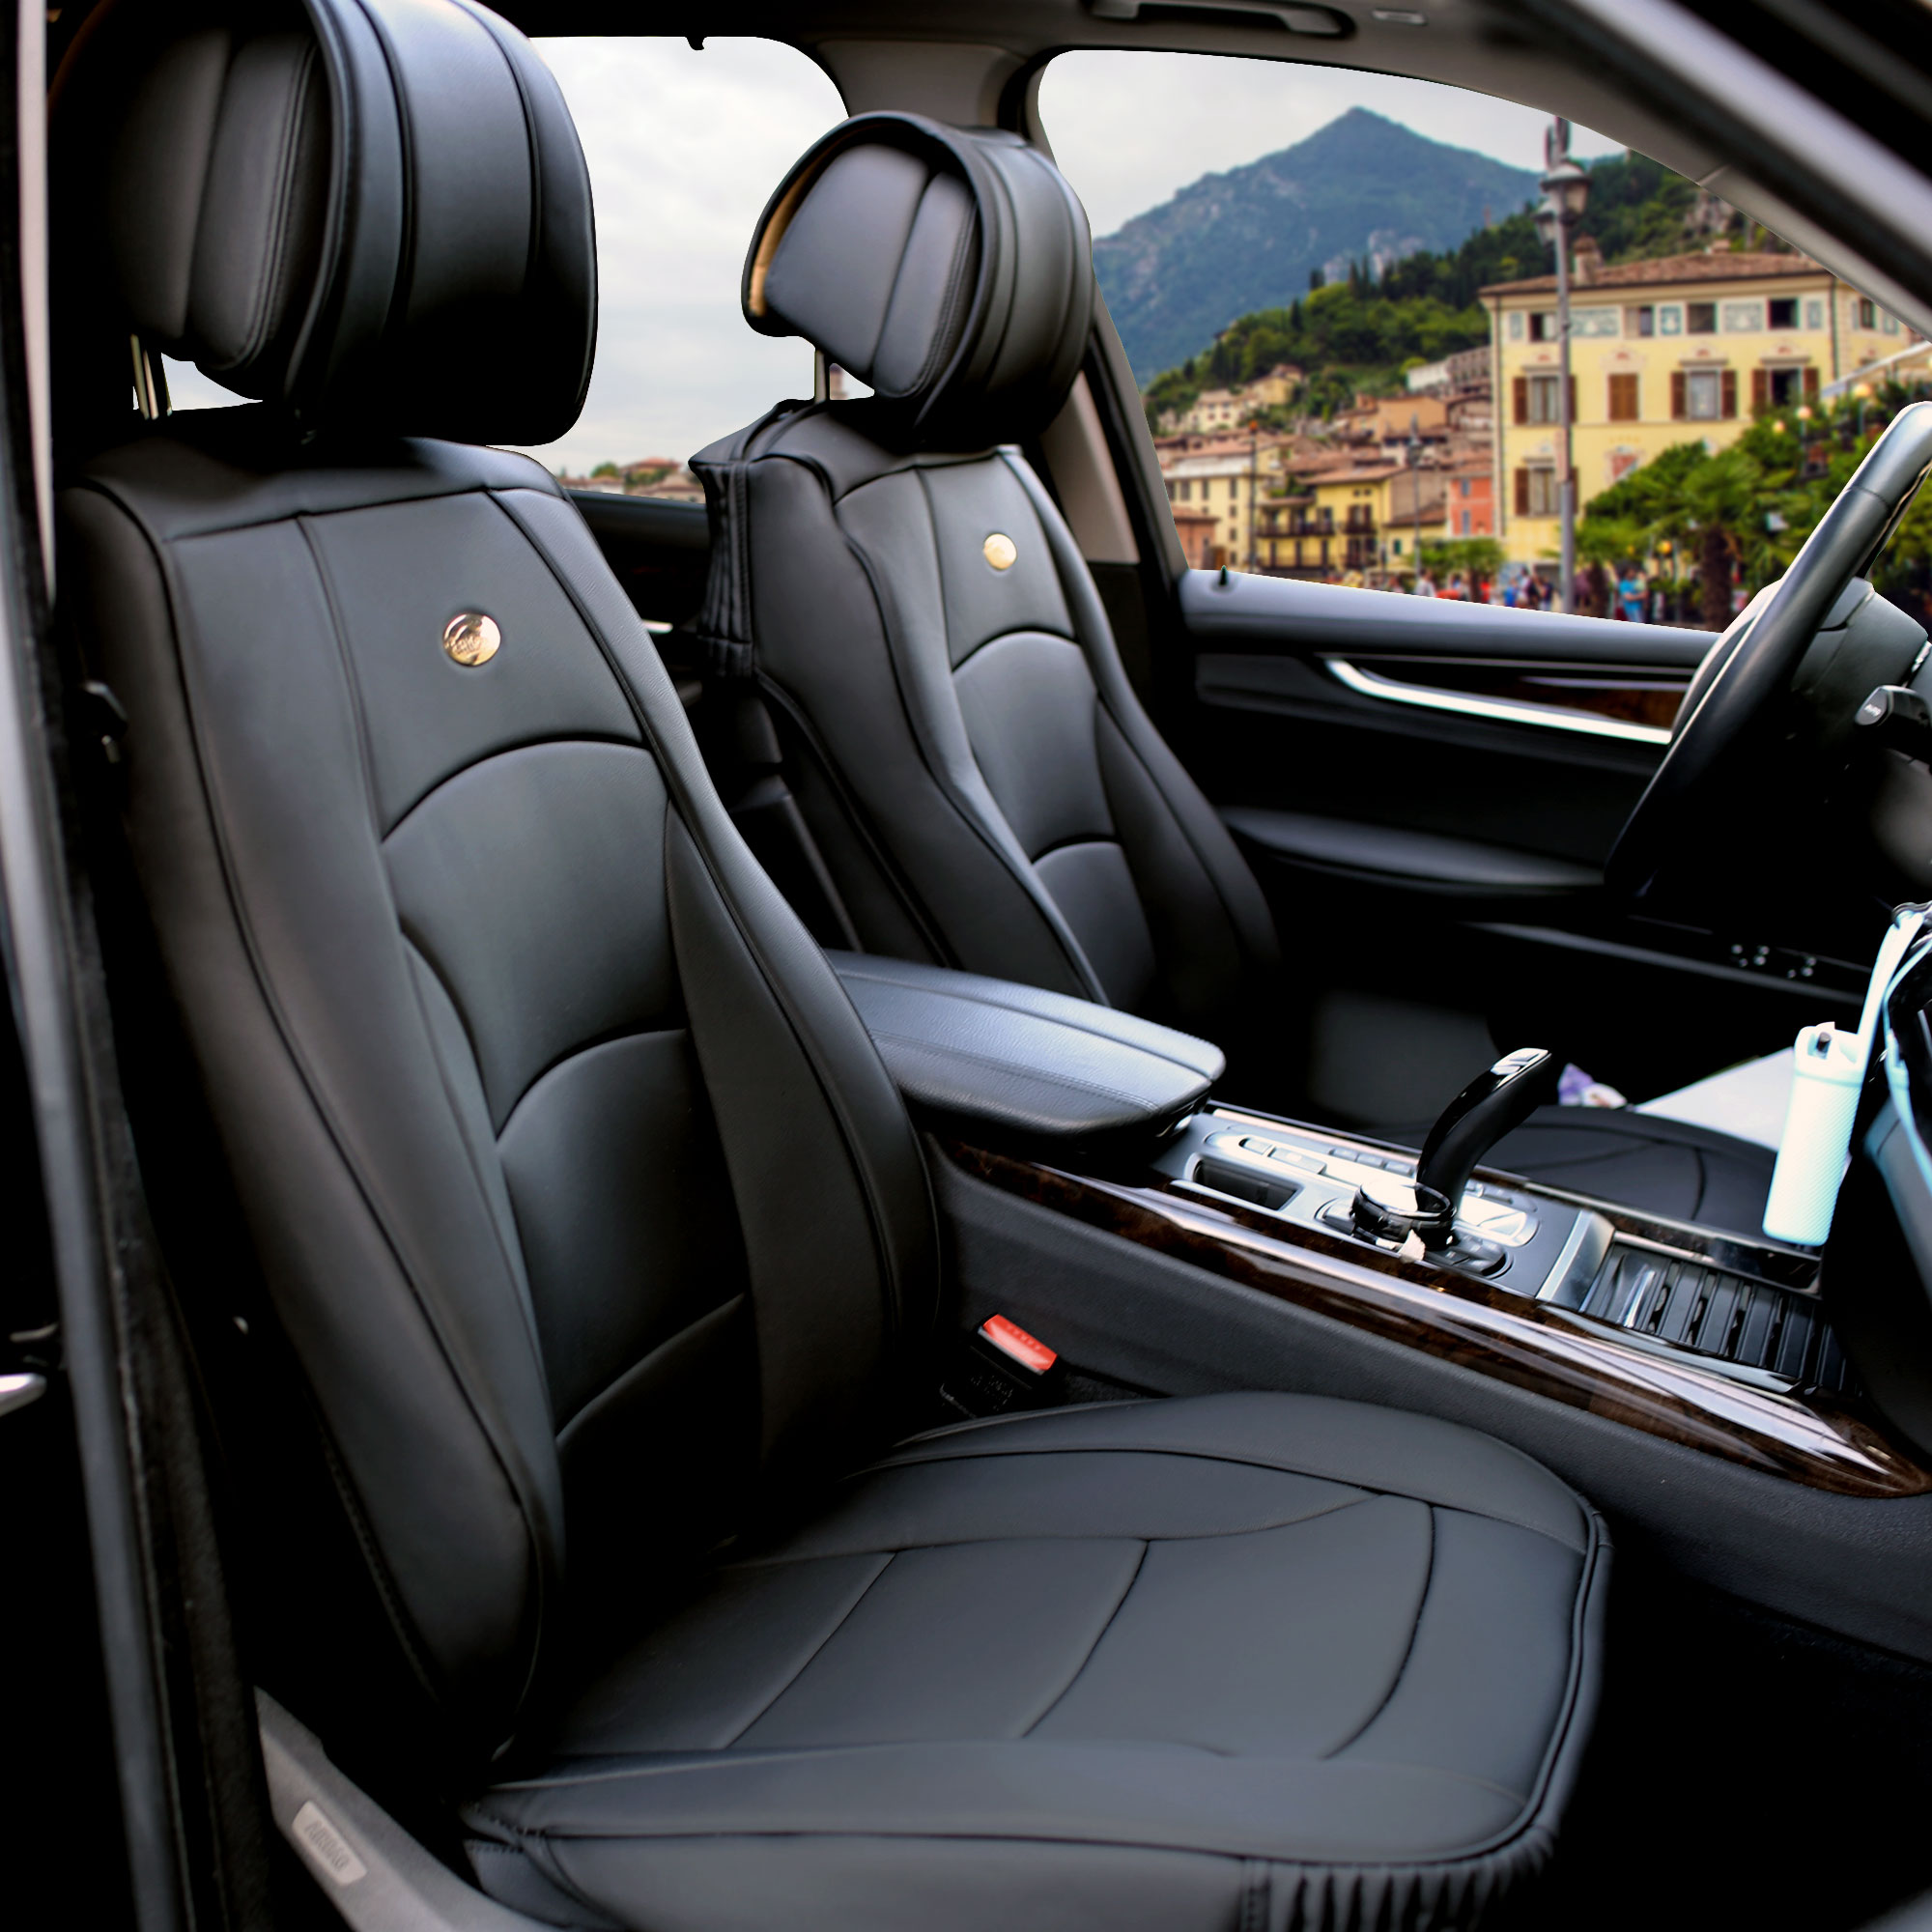 Luxury-Leather-Seat-Cushion-Covers-Front-Bucket-Pair-11-Color-Options thumbnail 7